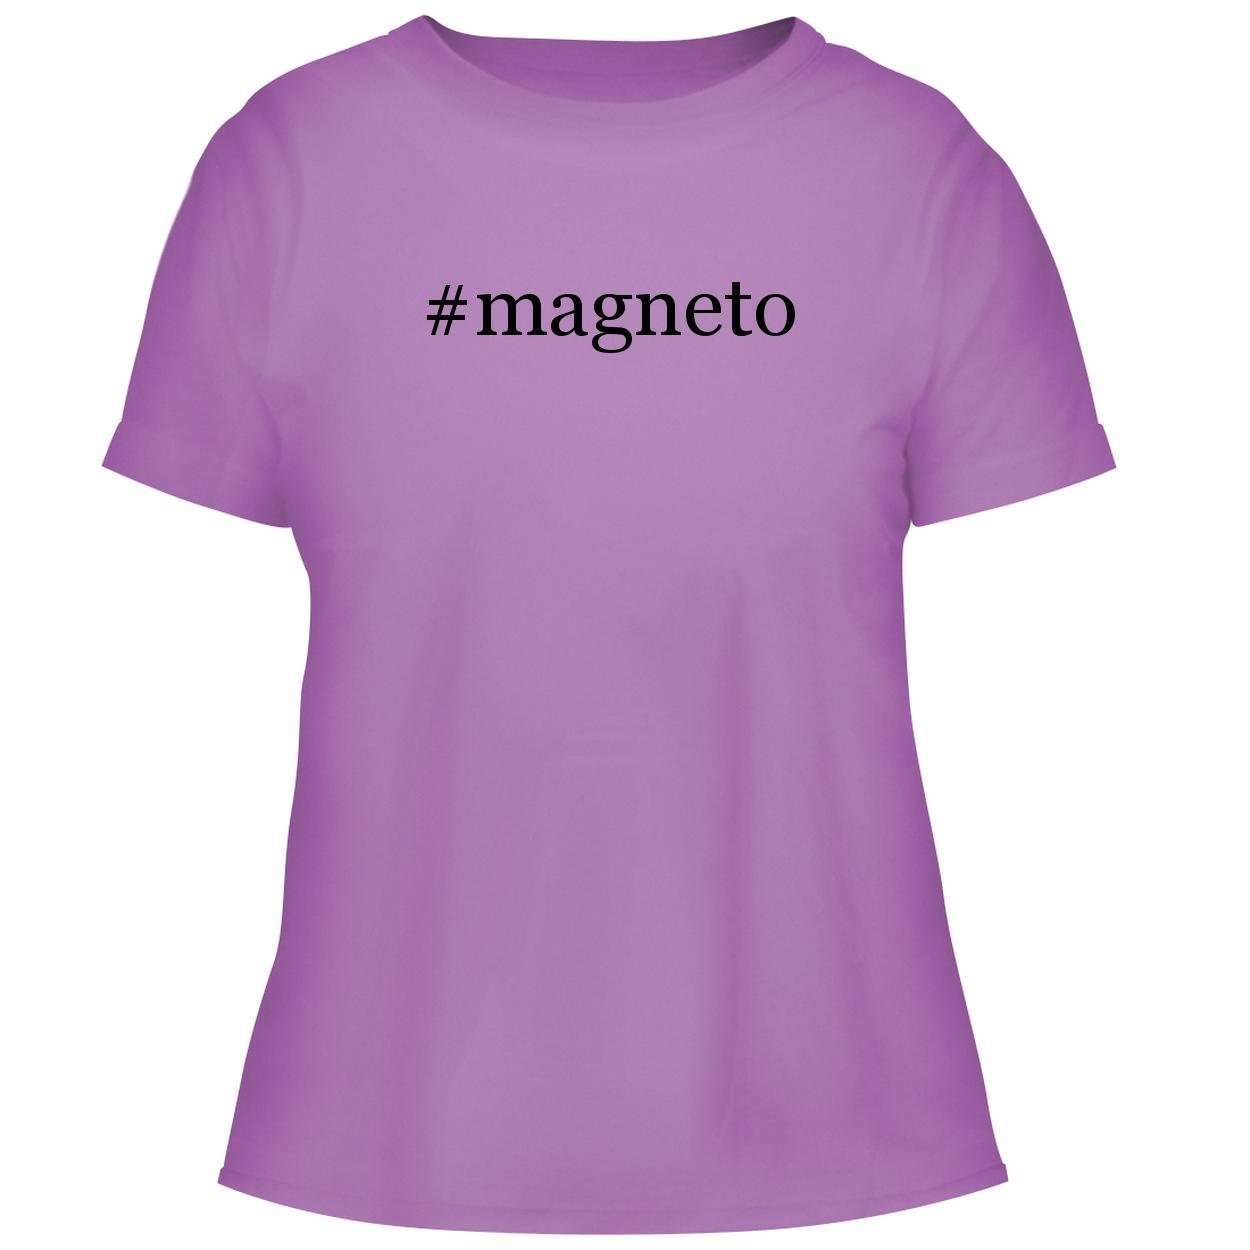 BH Cool Designs #Magneto - Cute Women's Graphic Tee, Lavender, XX-Large